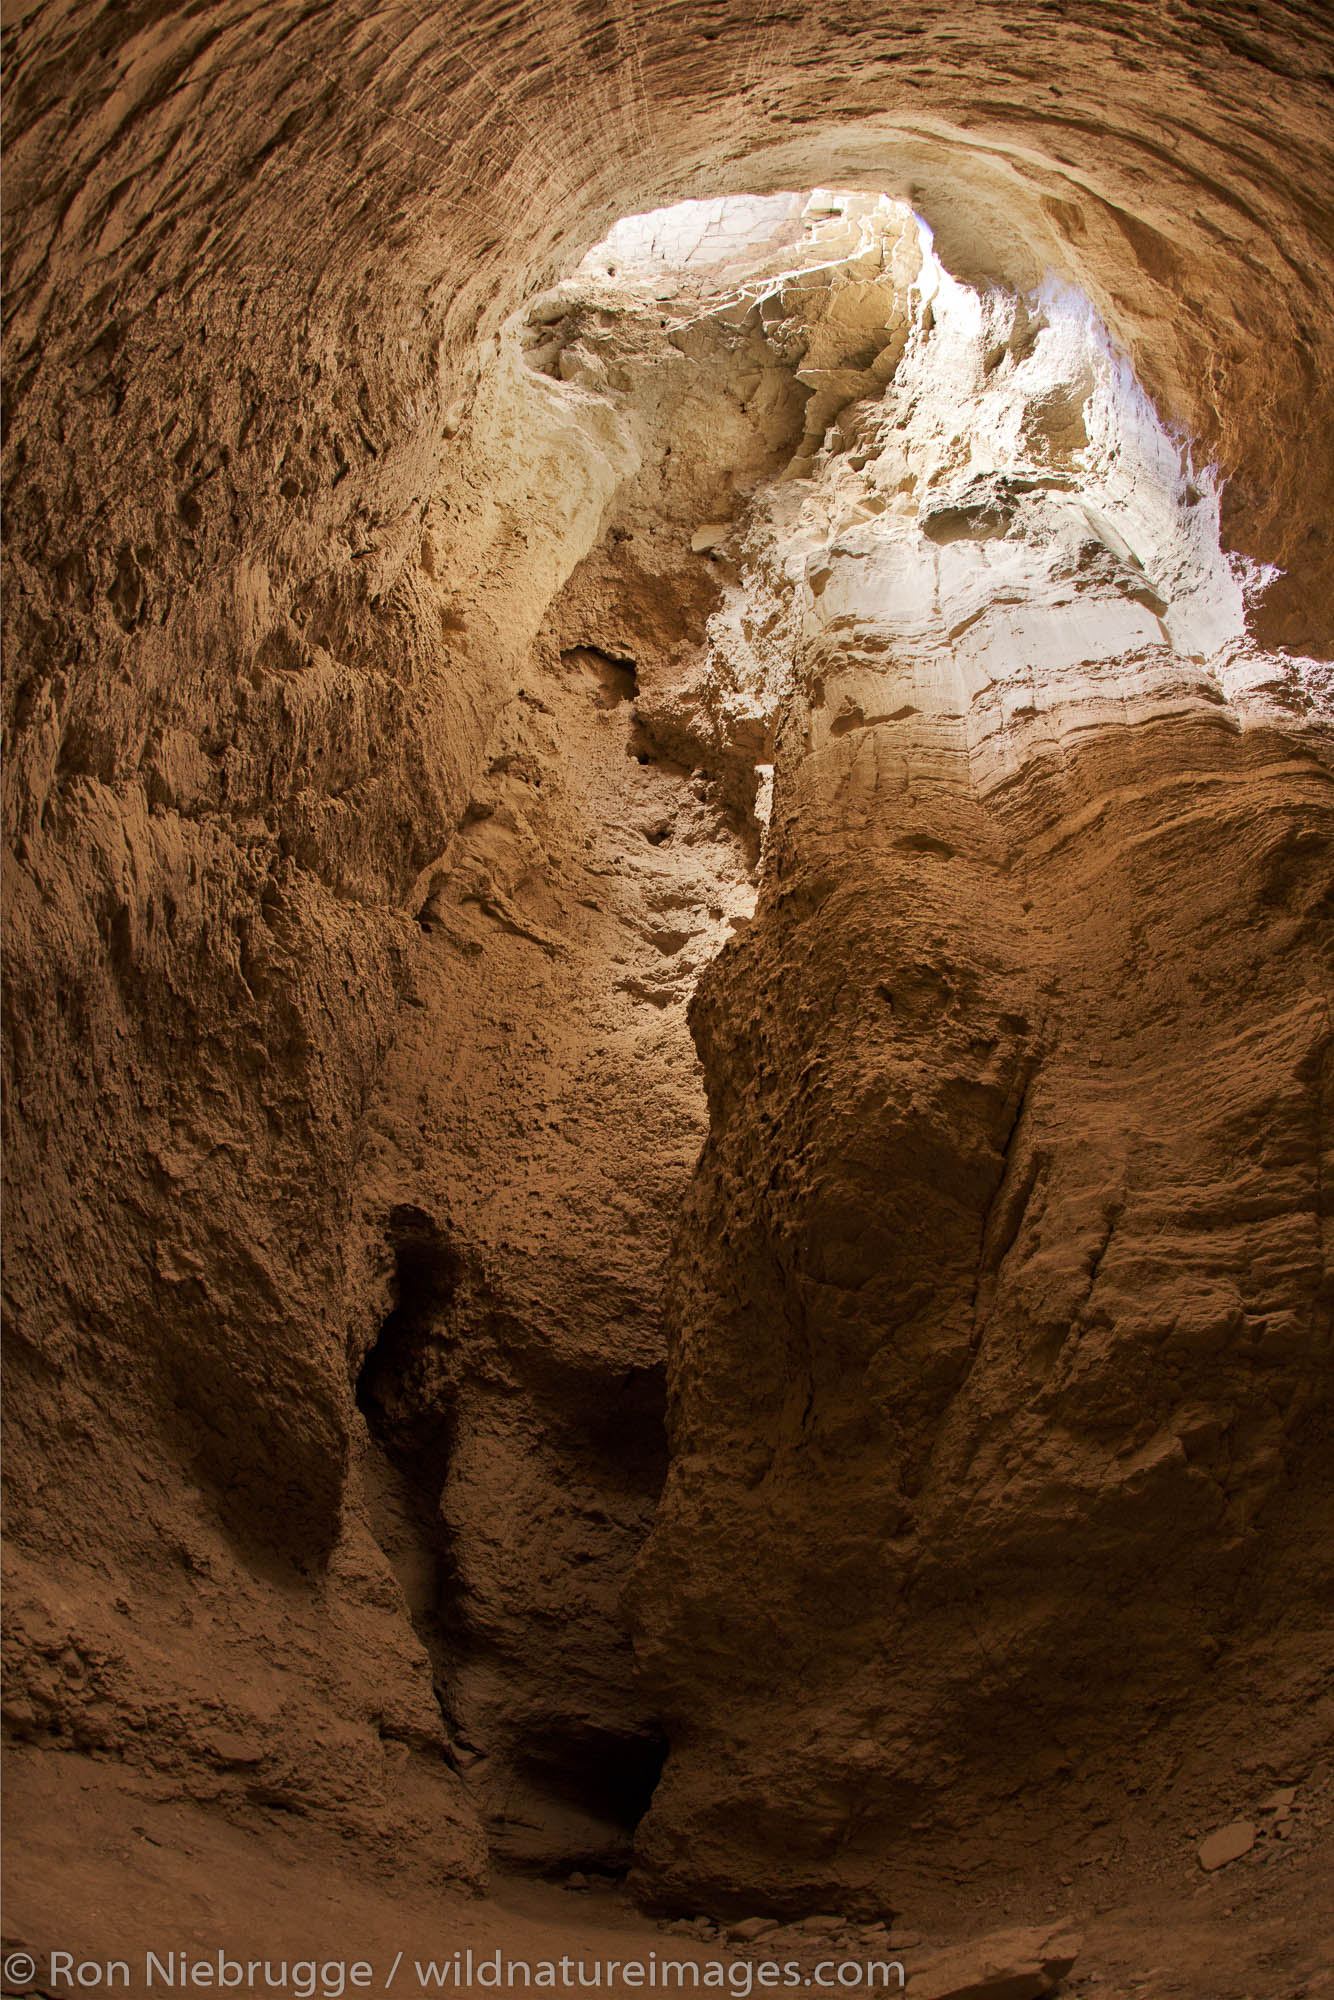 Some of the biggest mud caves in the world, Anza-Borrego Desert State Park, California.